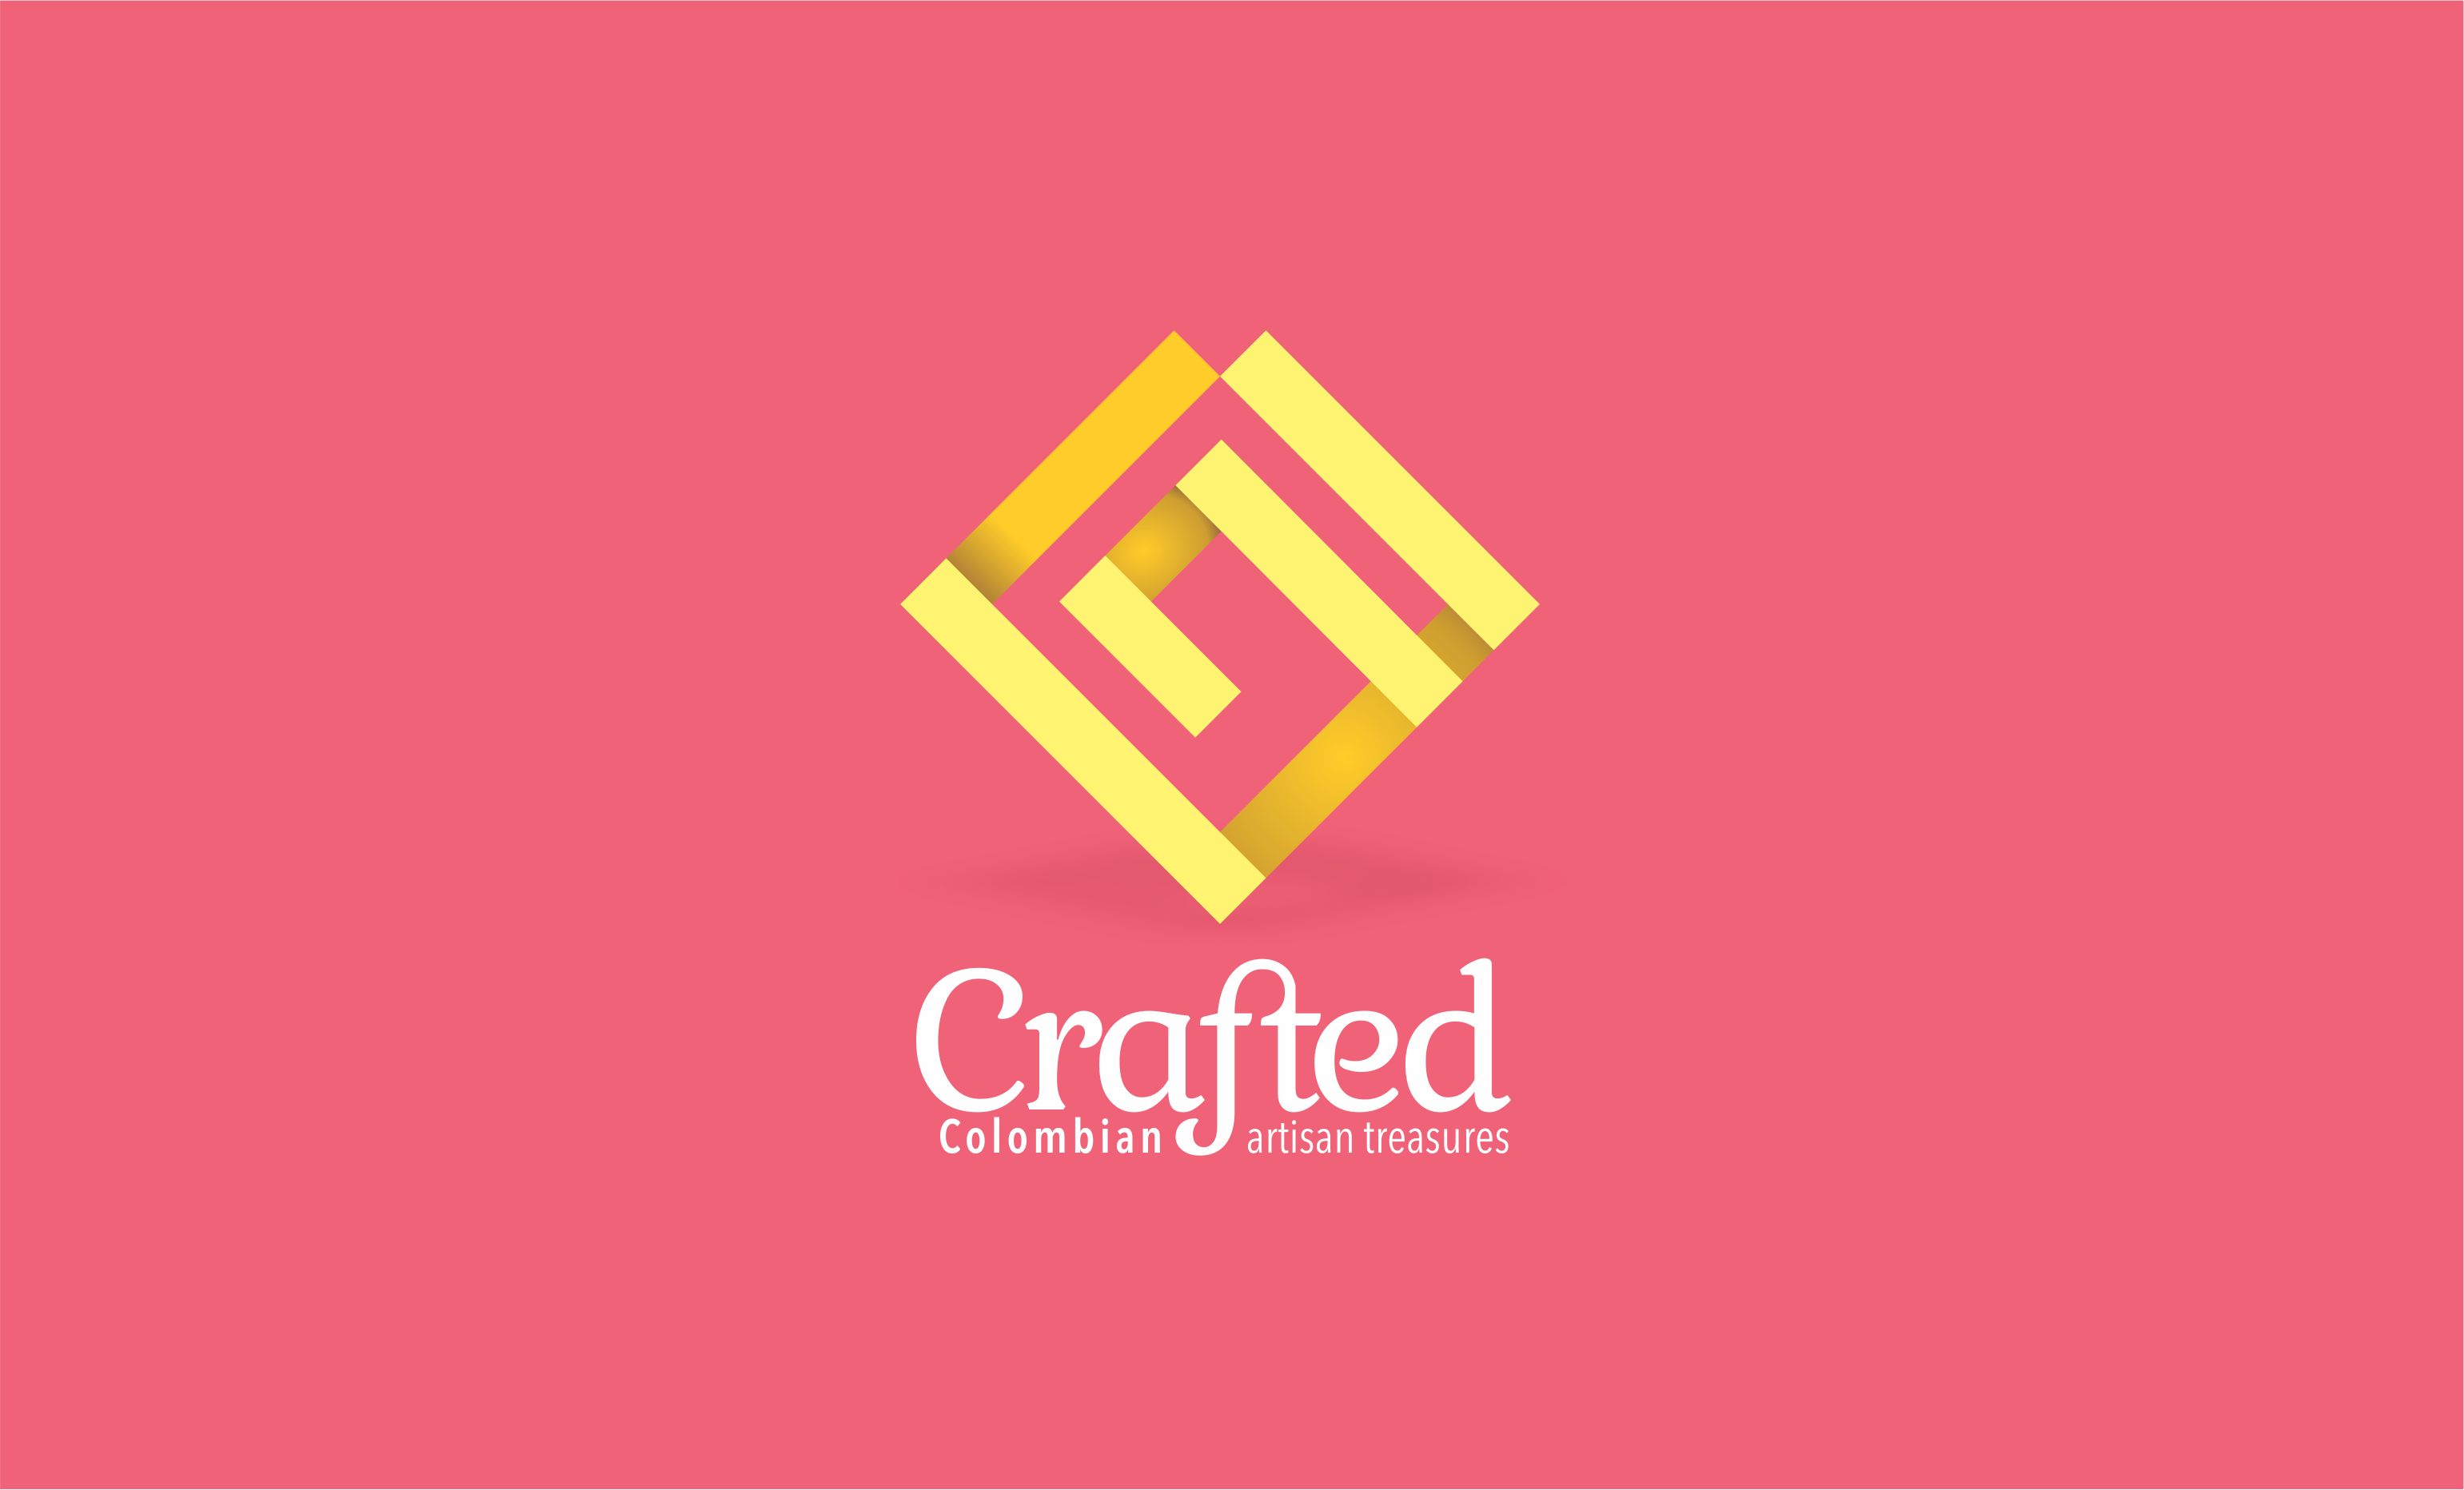 Crafted, Colombian Artisan Treasures